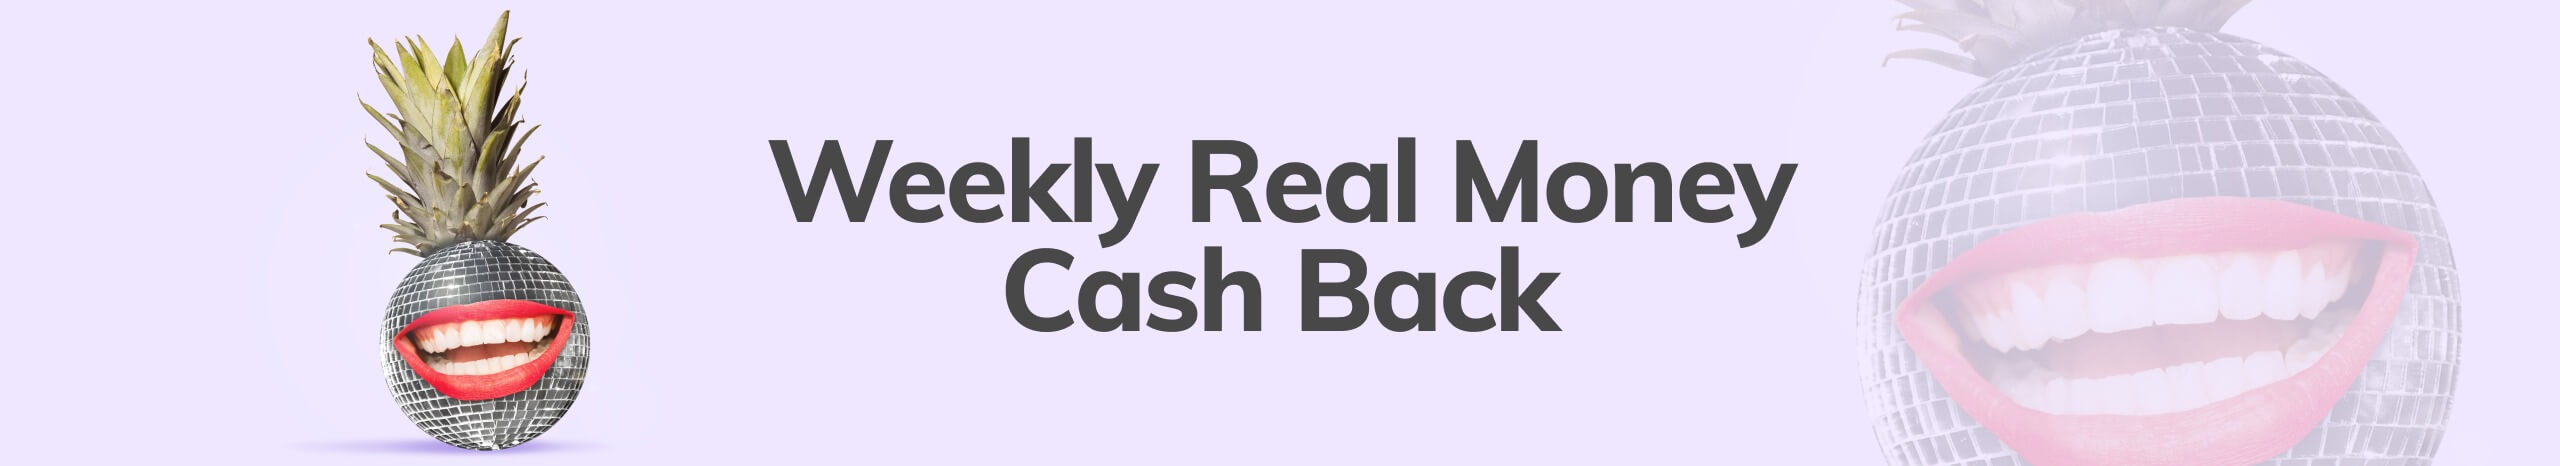 Weekly Cash Back